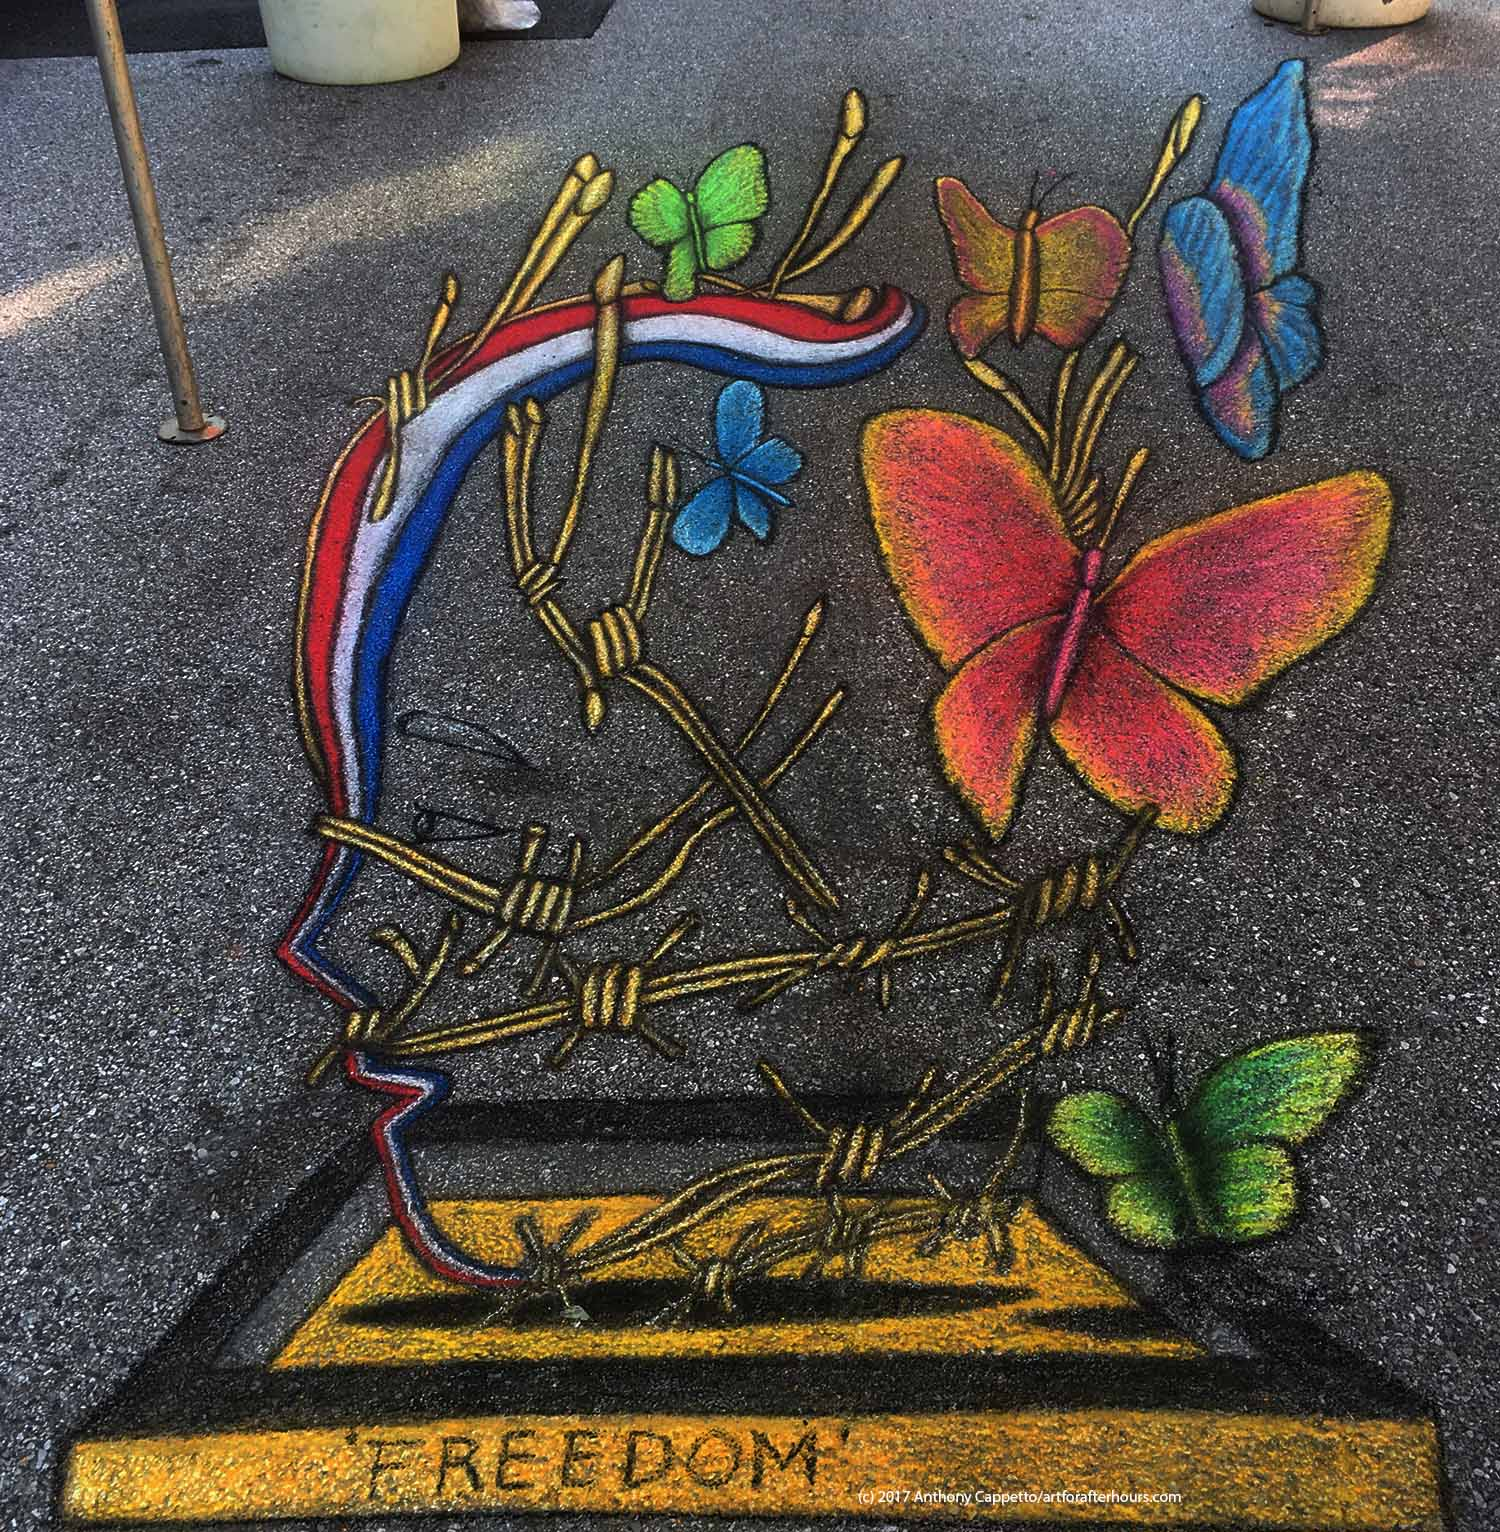 Completed 3D Street Art Piece 'Freedom'.